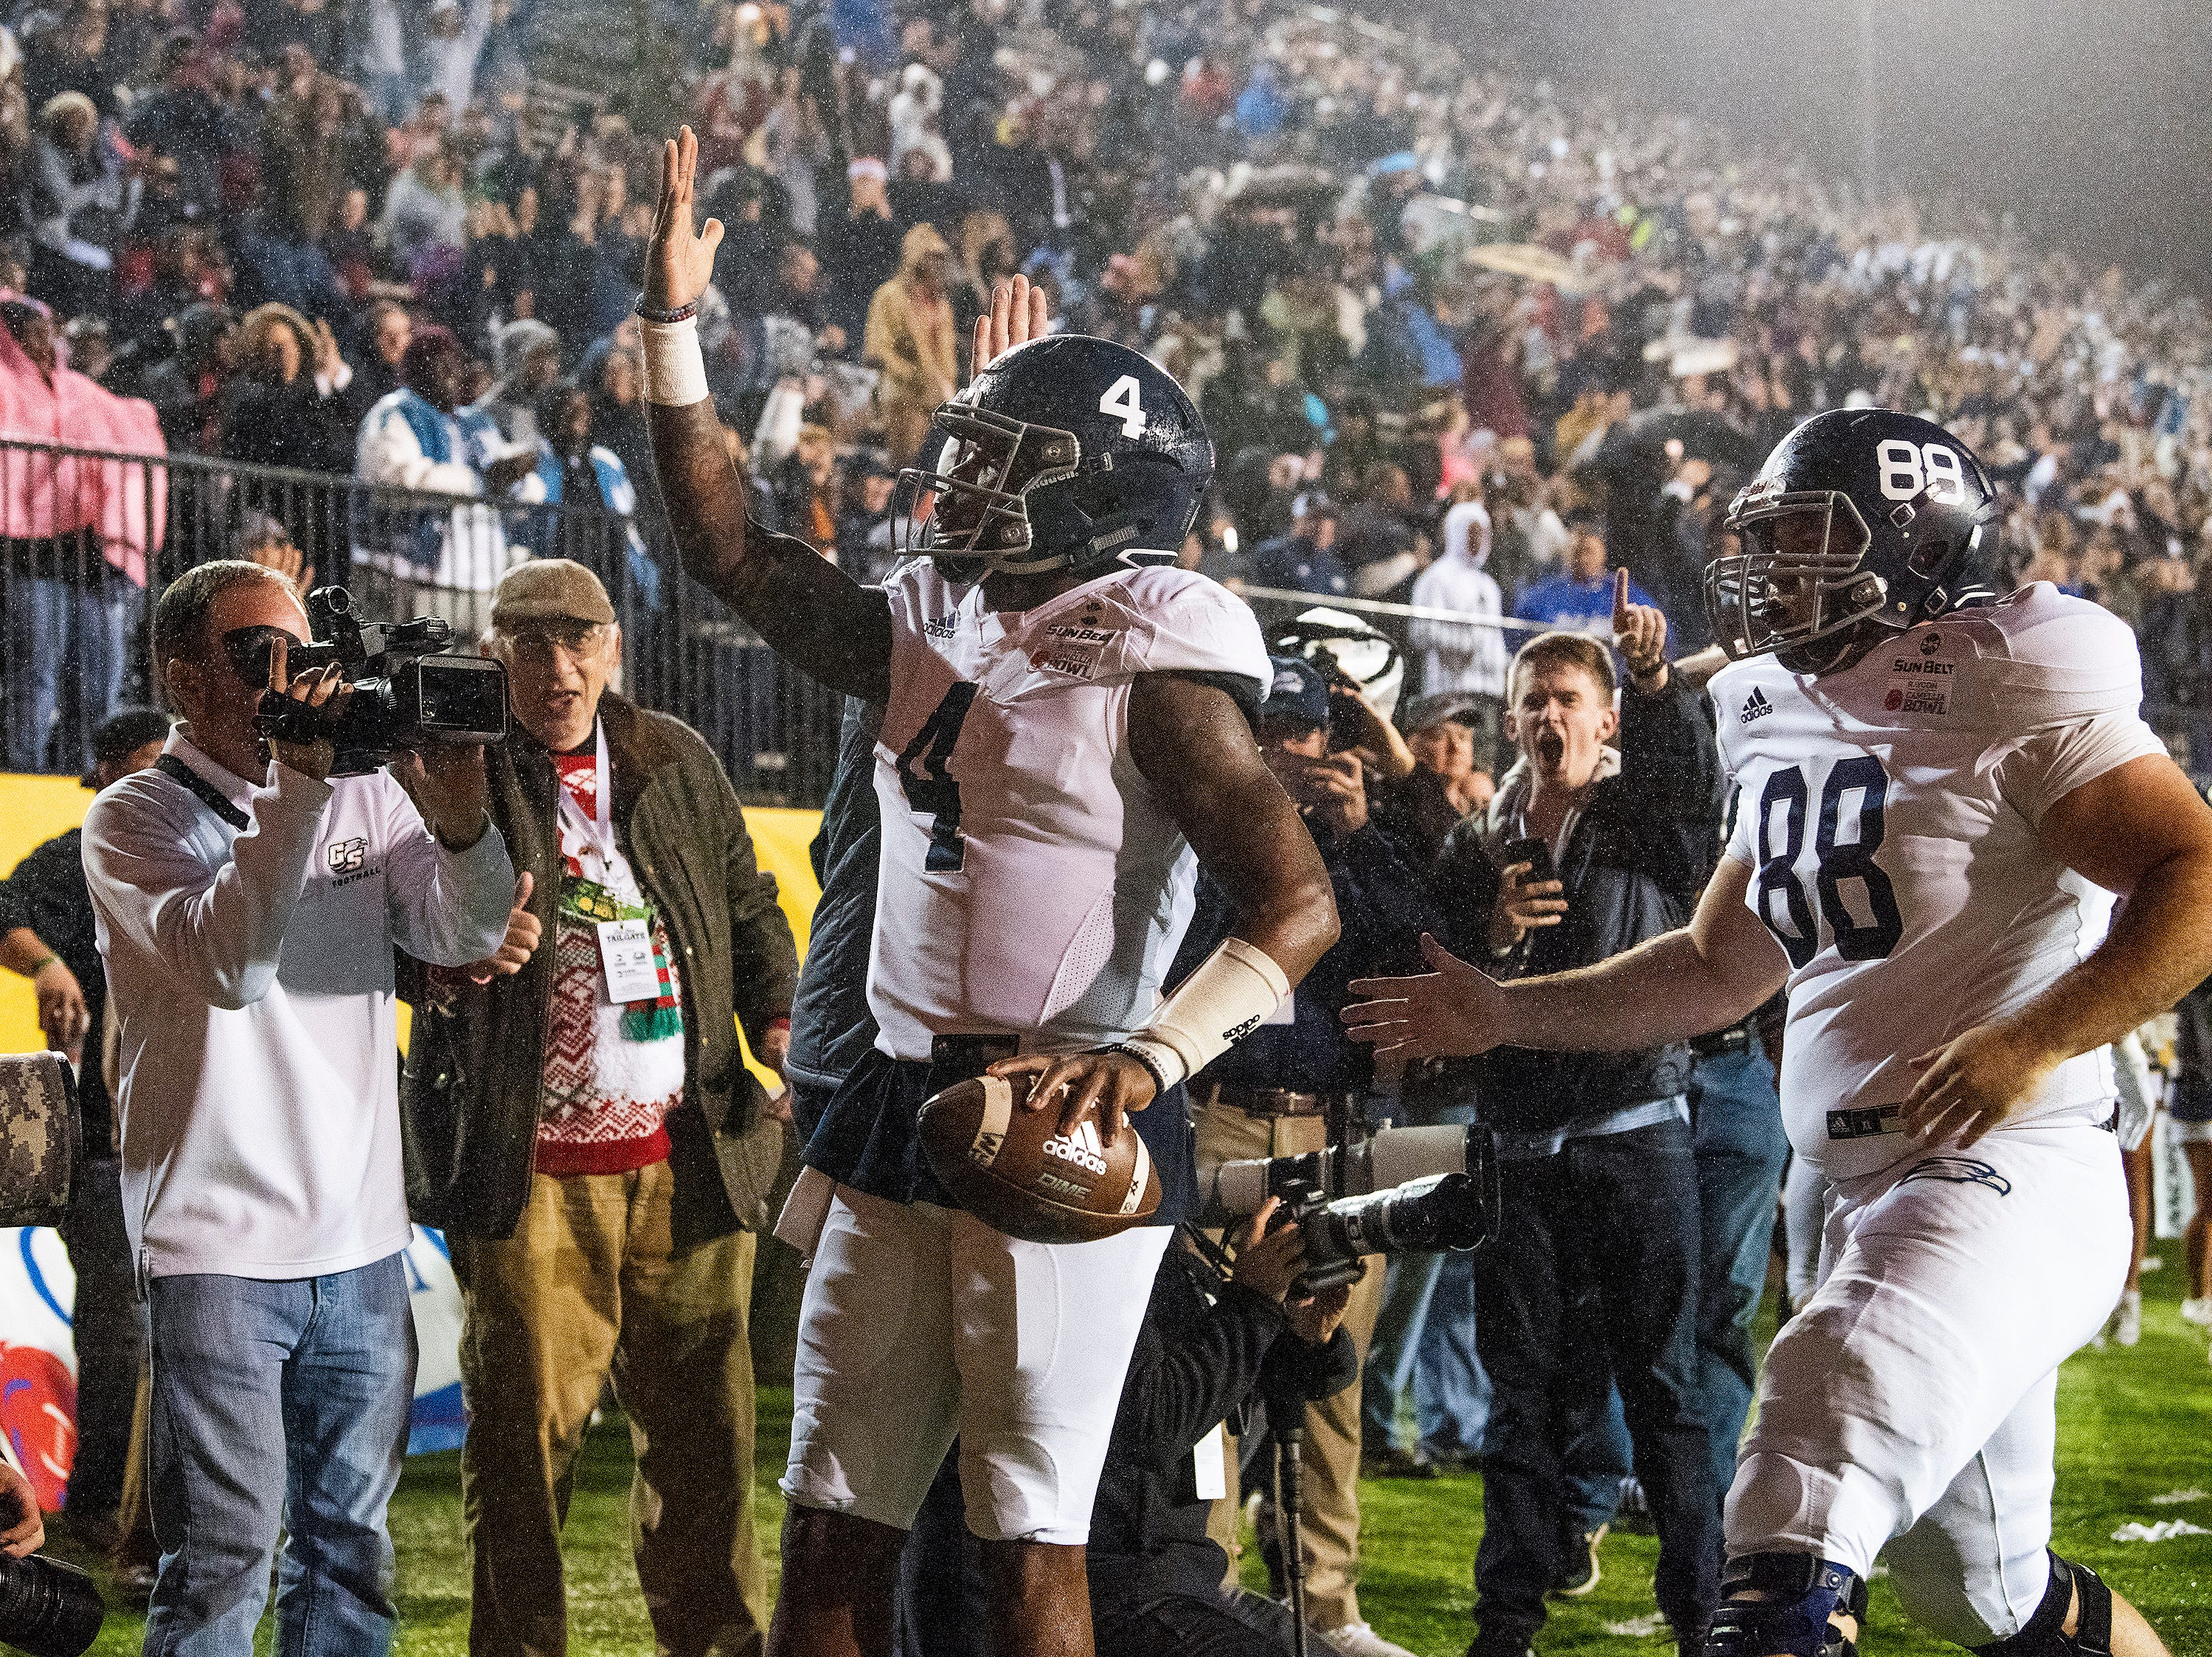 Georgia Southern quarterback Shai Werts (4) celebrates his second touchdown of the first half against Eastern Michigan in the Raycom Media  Camellia Bowl held at Cramton Bowl in Montgomery, Ala., on Saturday December 15, 2018.